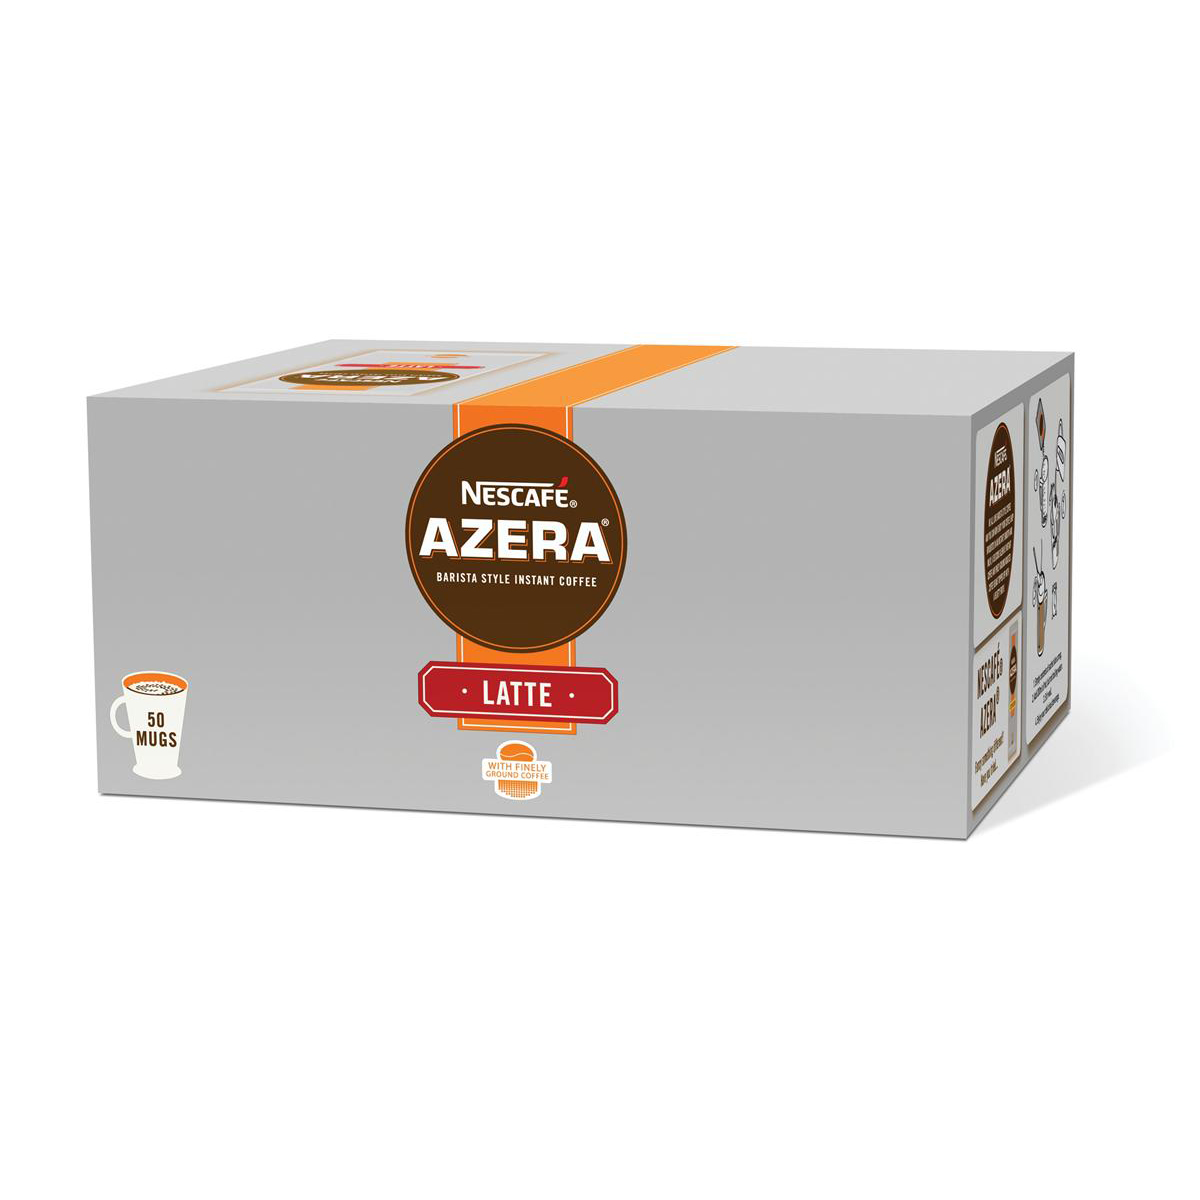 Nescafe Azera Latte Coffee Sachets Ref 12262457 [Pack 50]